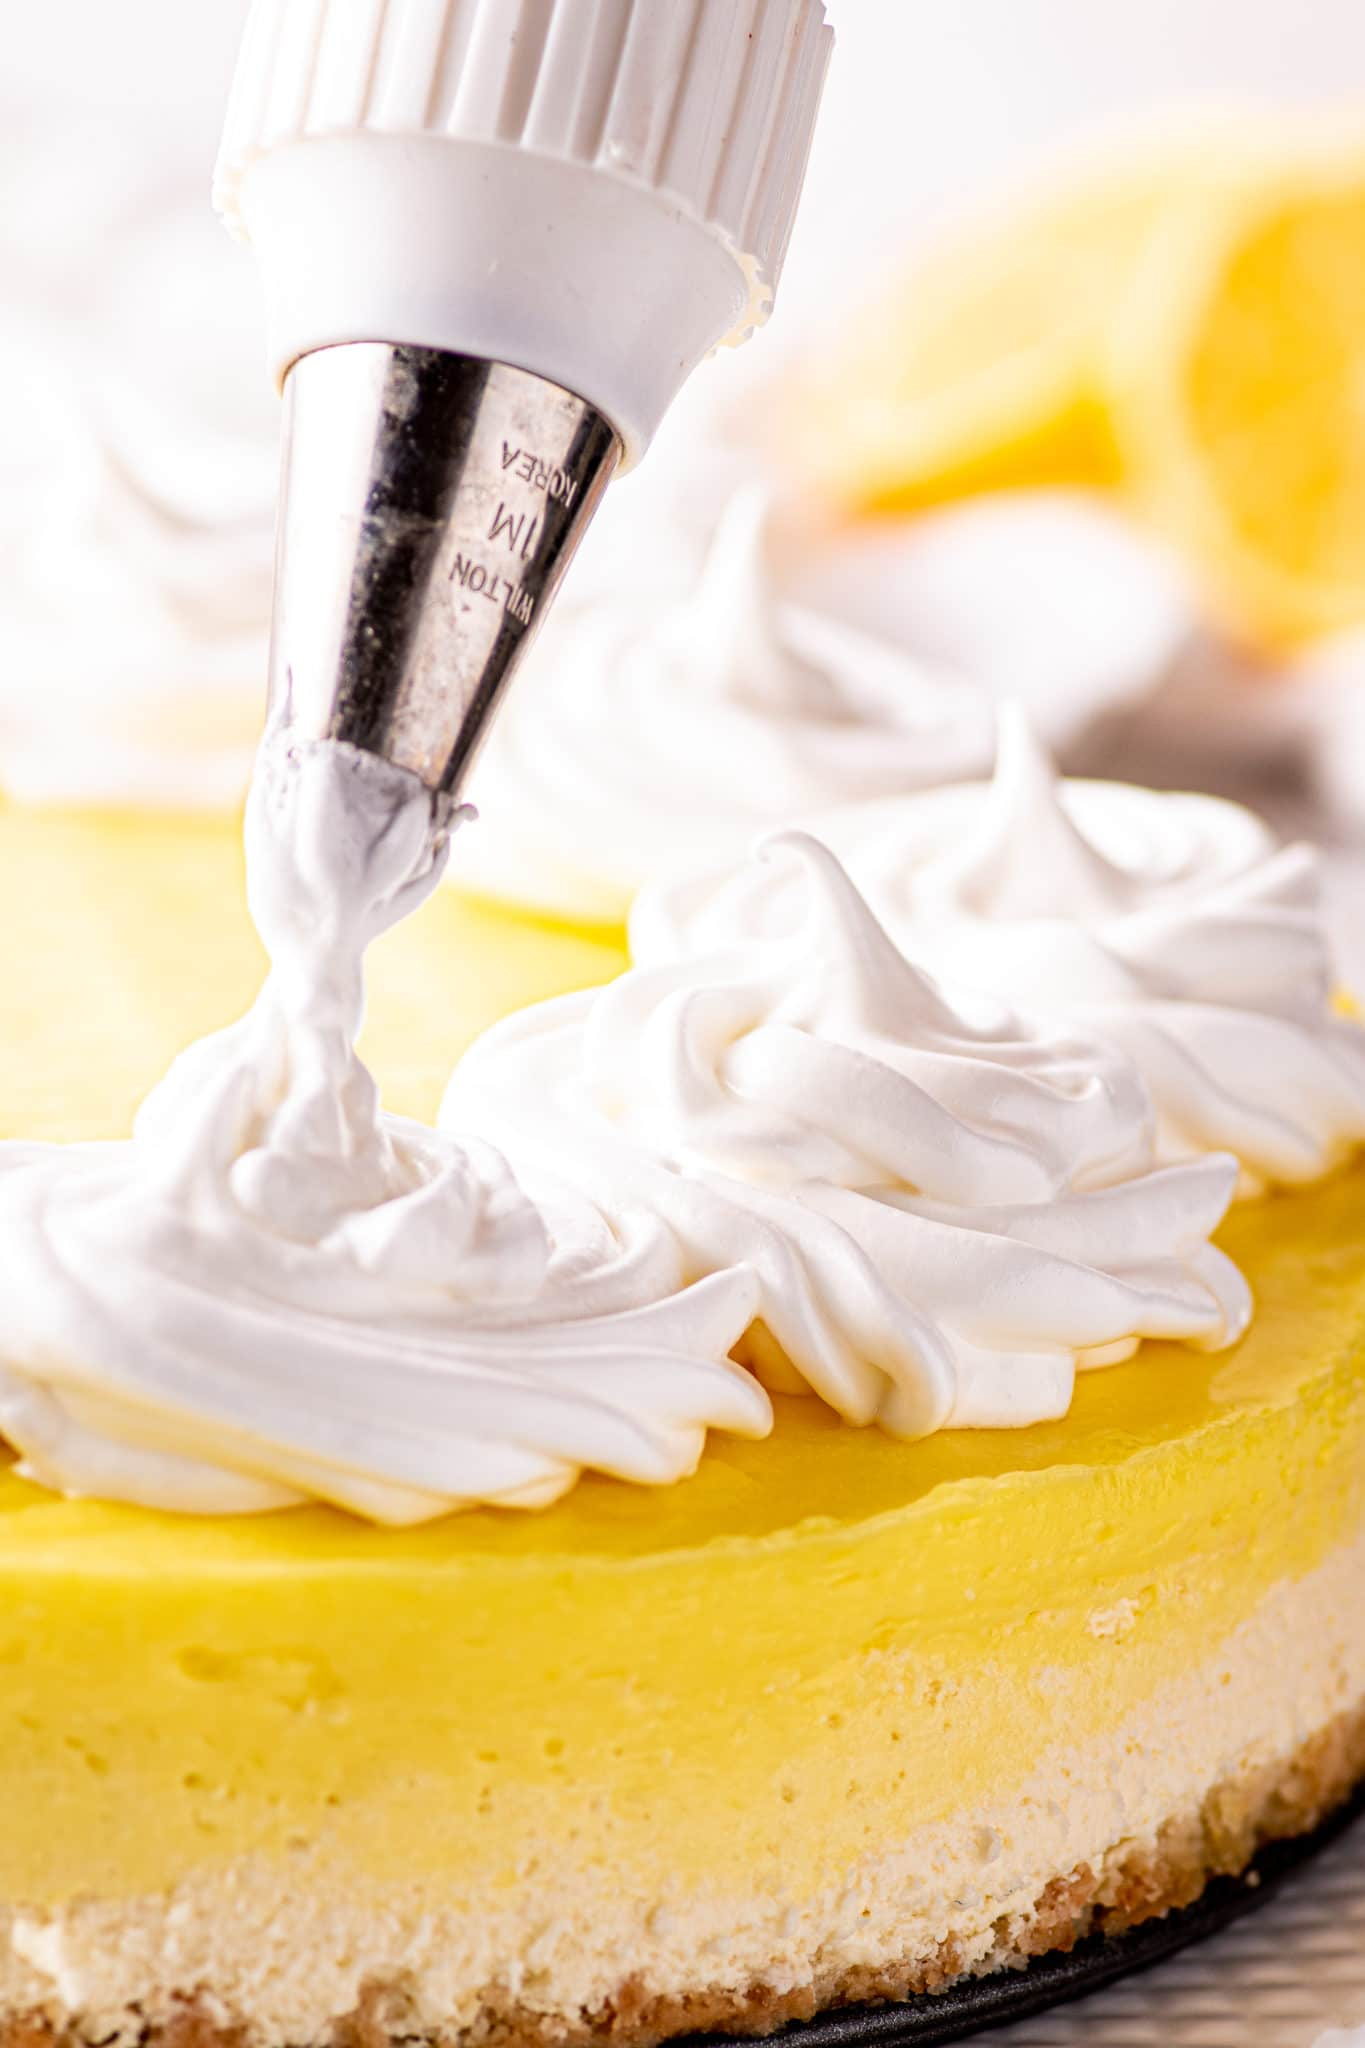 Meringue being pipped into piles of swirls on top of a bright lemon cheesecake.